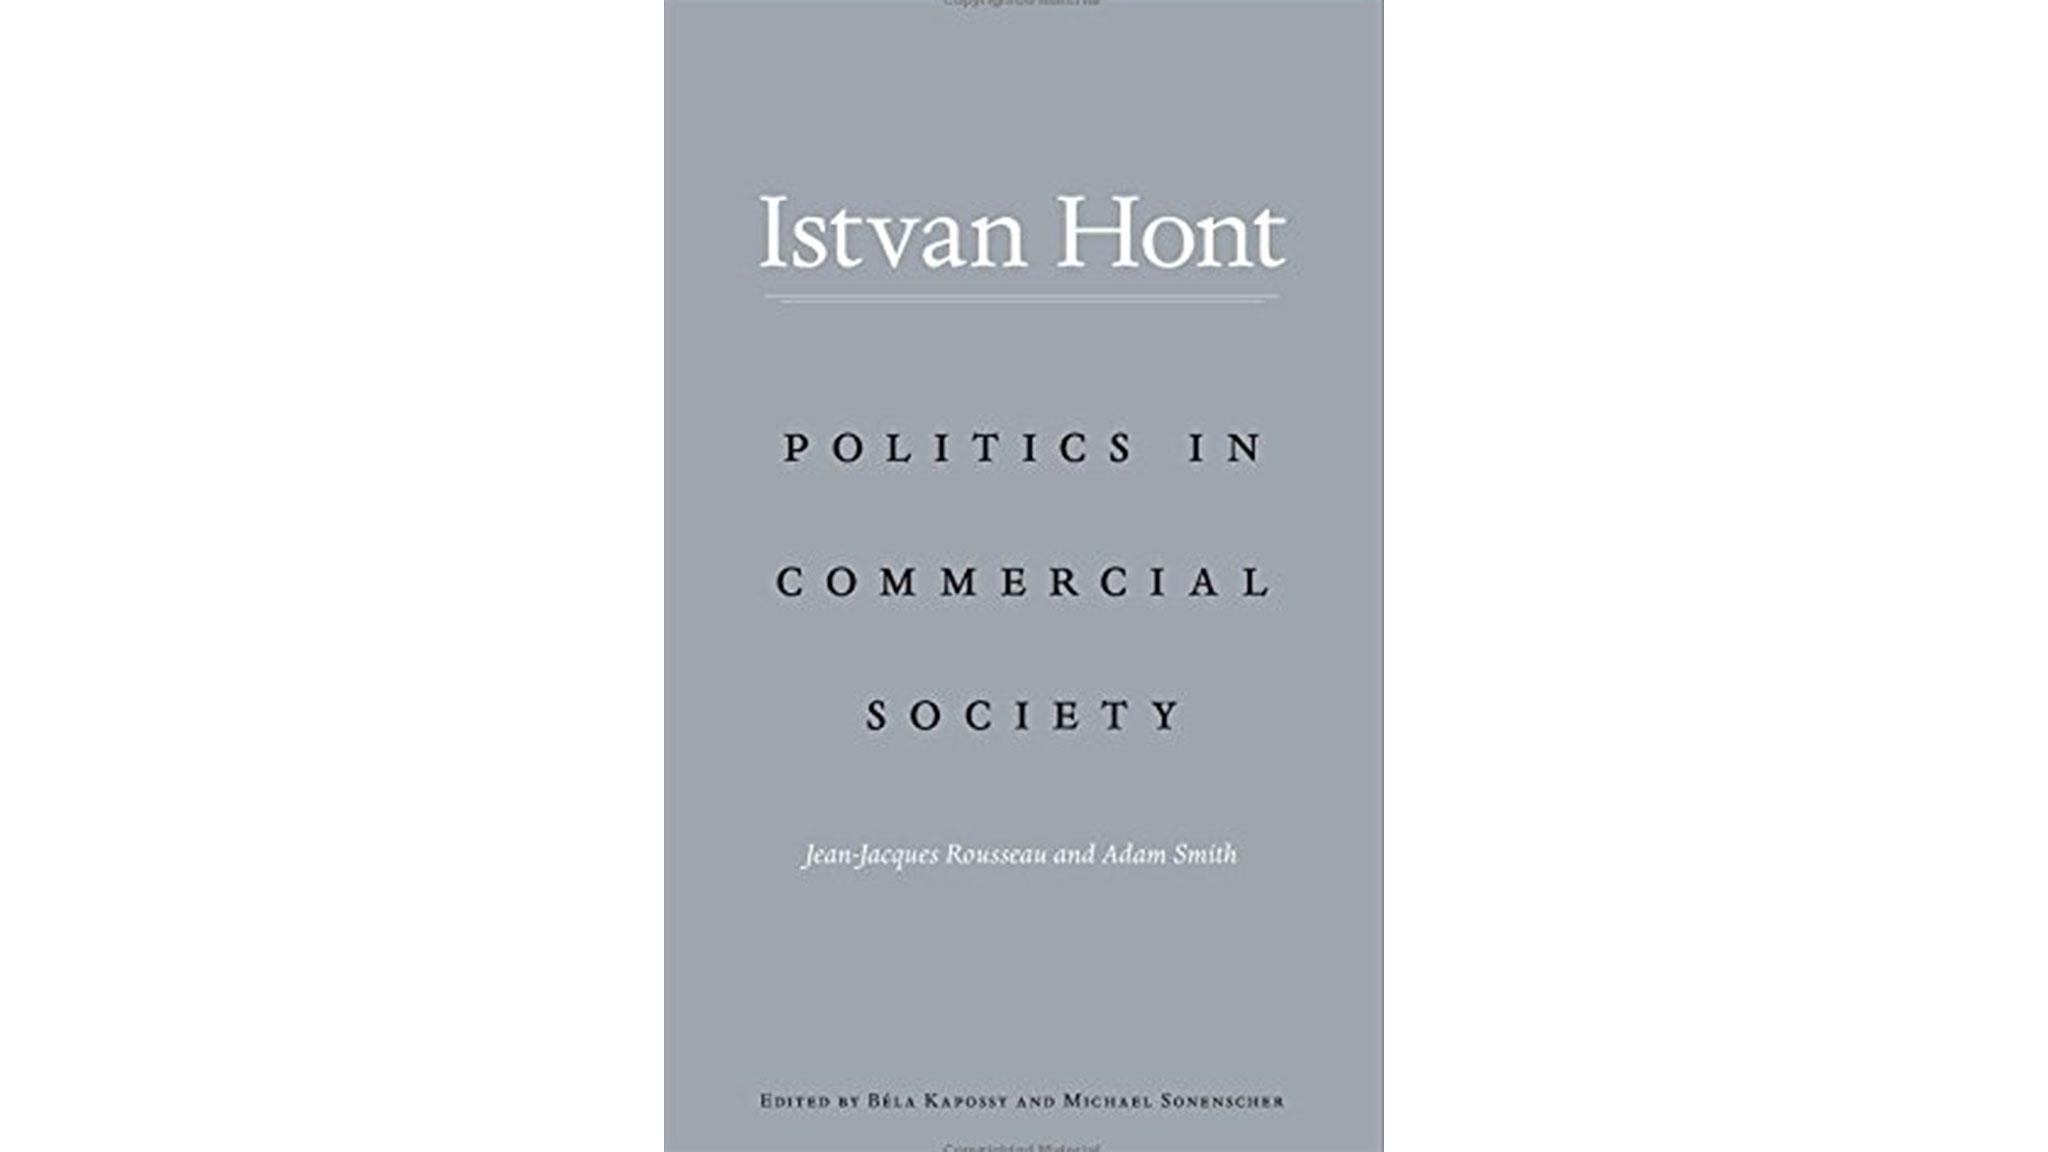 politics in commercial society jean jacques rousseau and adam politics in commercial society jean jacques rousseau and adam smith by istvatildeiexcln hont